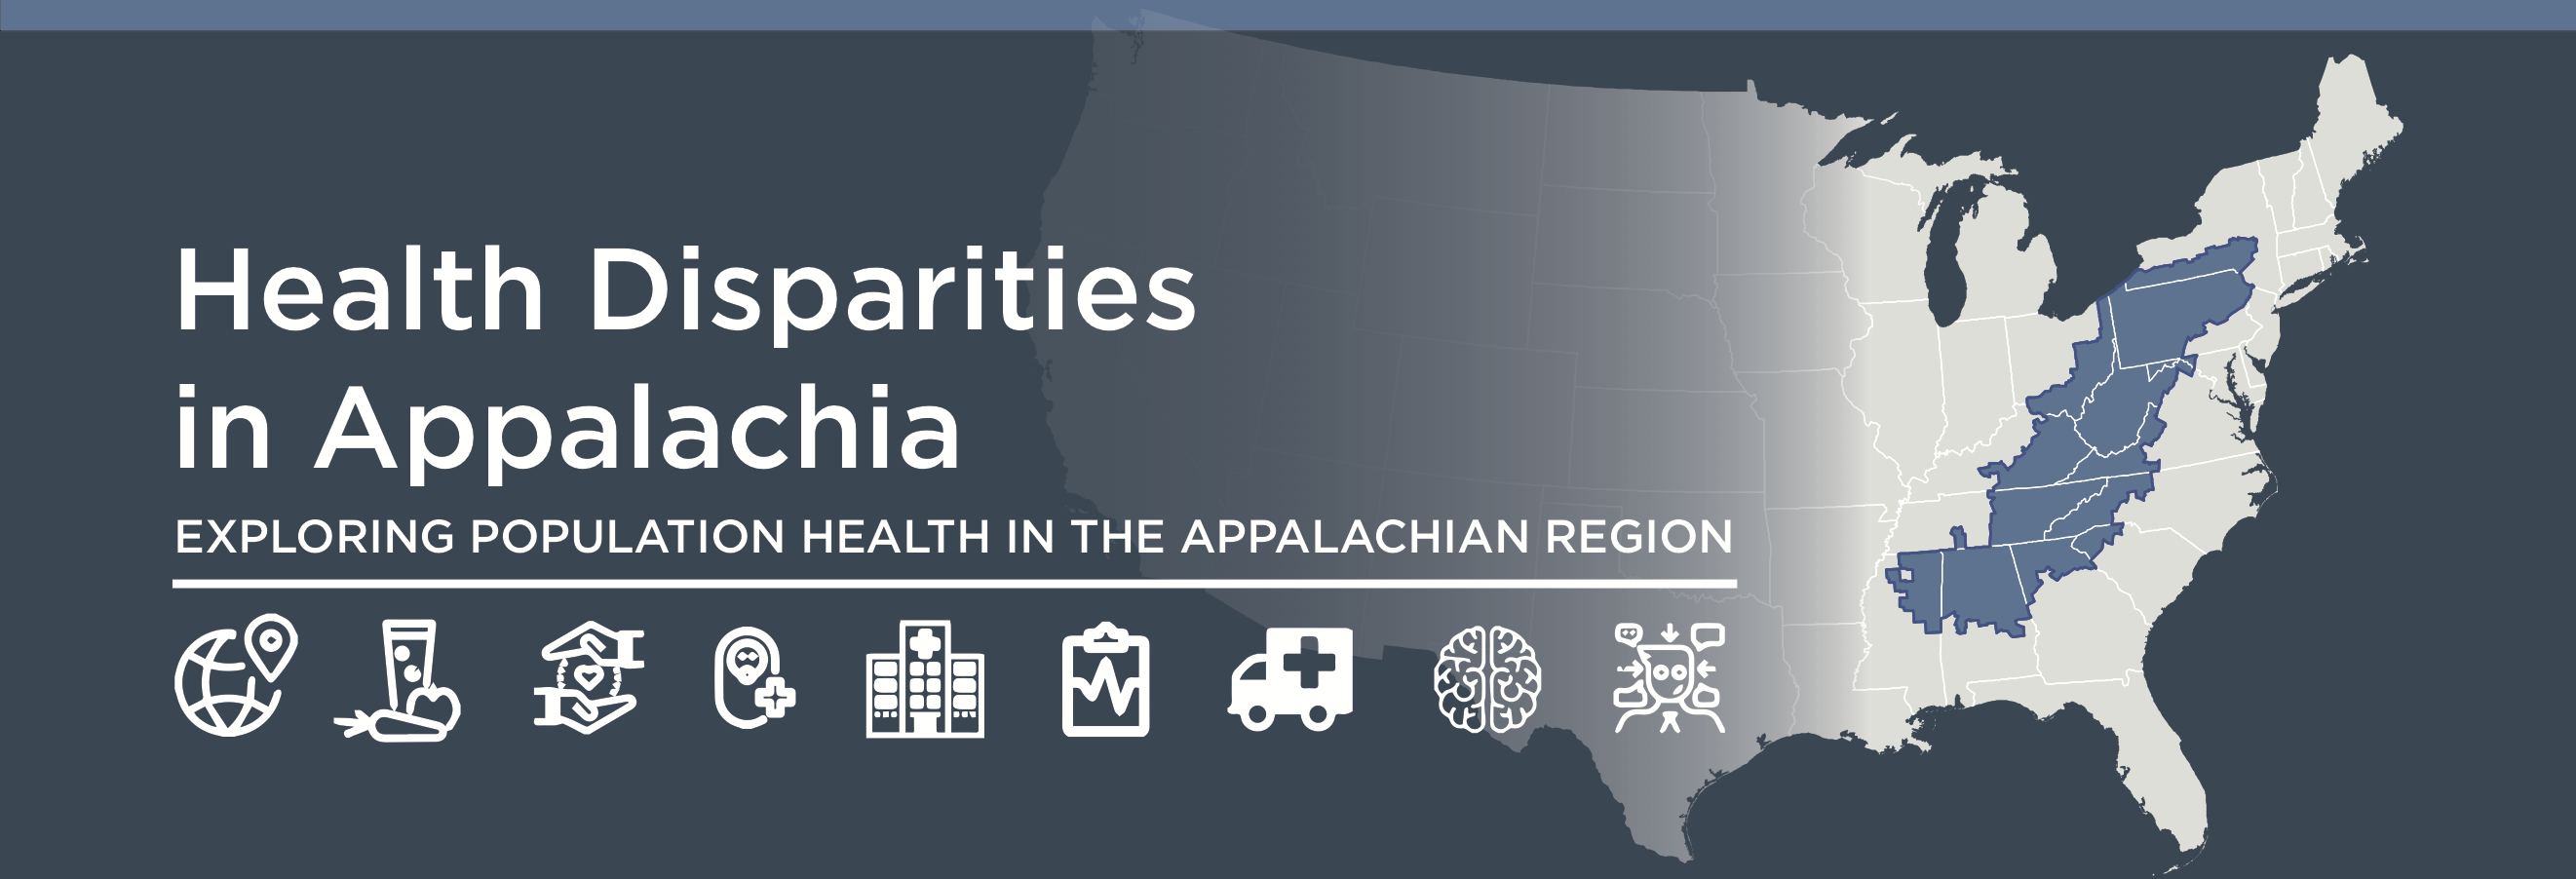 Health Disparities in Appalachia Banner